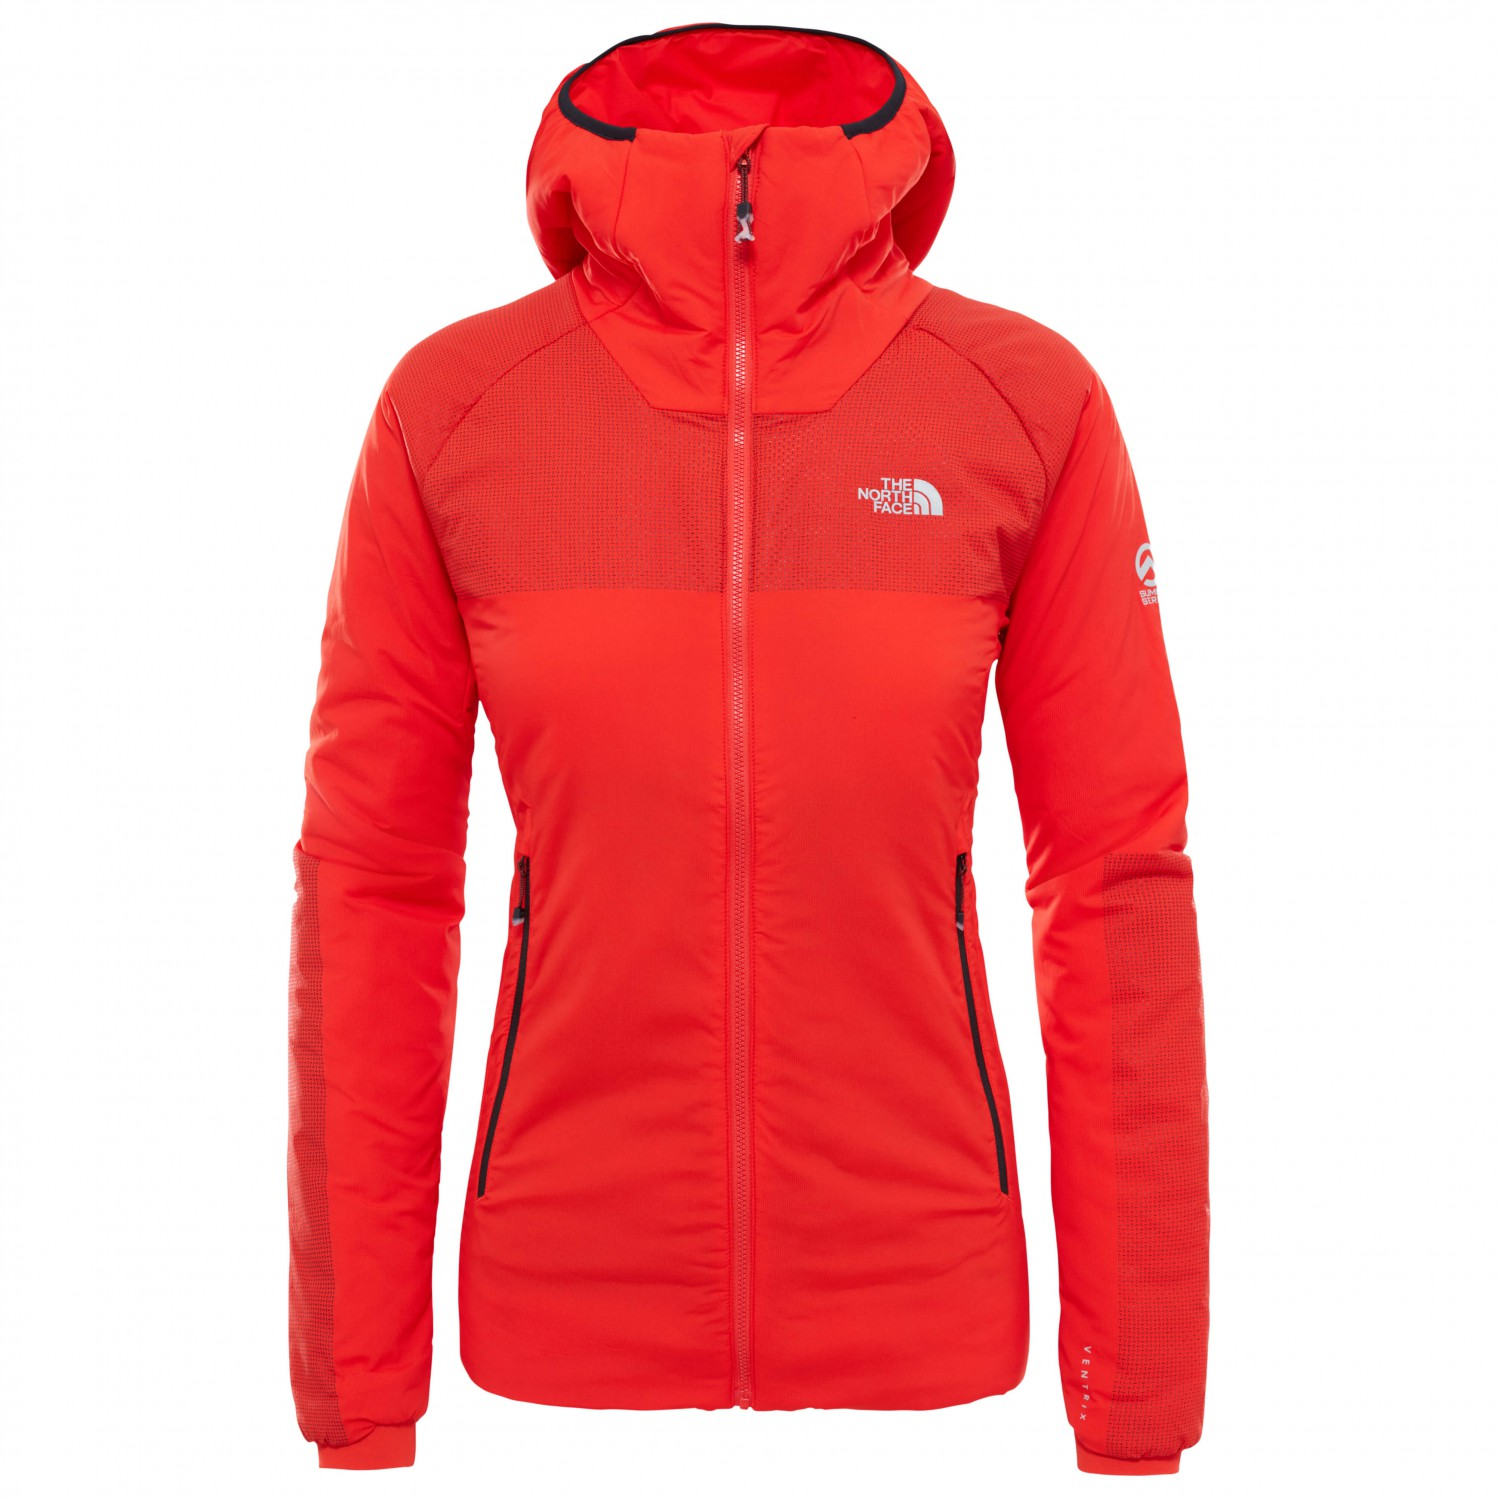 Manuale Pacifico gasping  The North Face Summit L3 Ventrix Hoody - Synthetic jacket Women's | Free EU  Delivery | Bergfreunde.eu